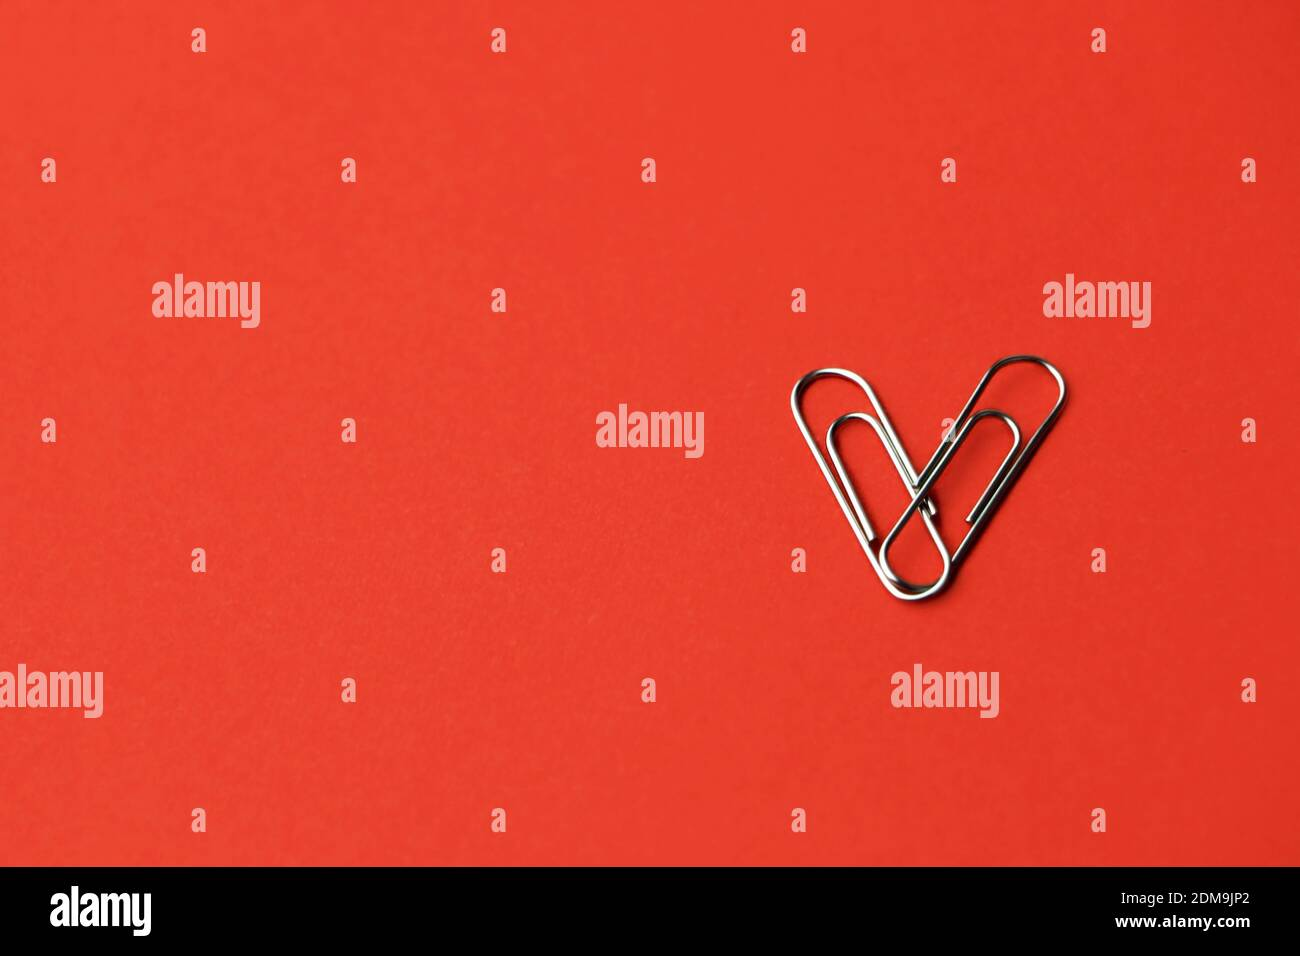 Heart shape paper clips on a red background. Valentine's day concept. High quality photo Foto de stock